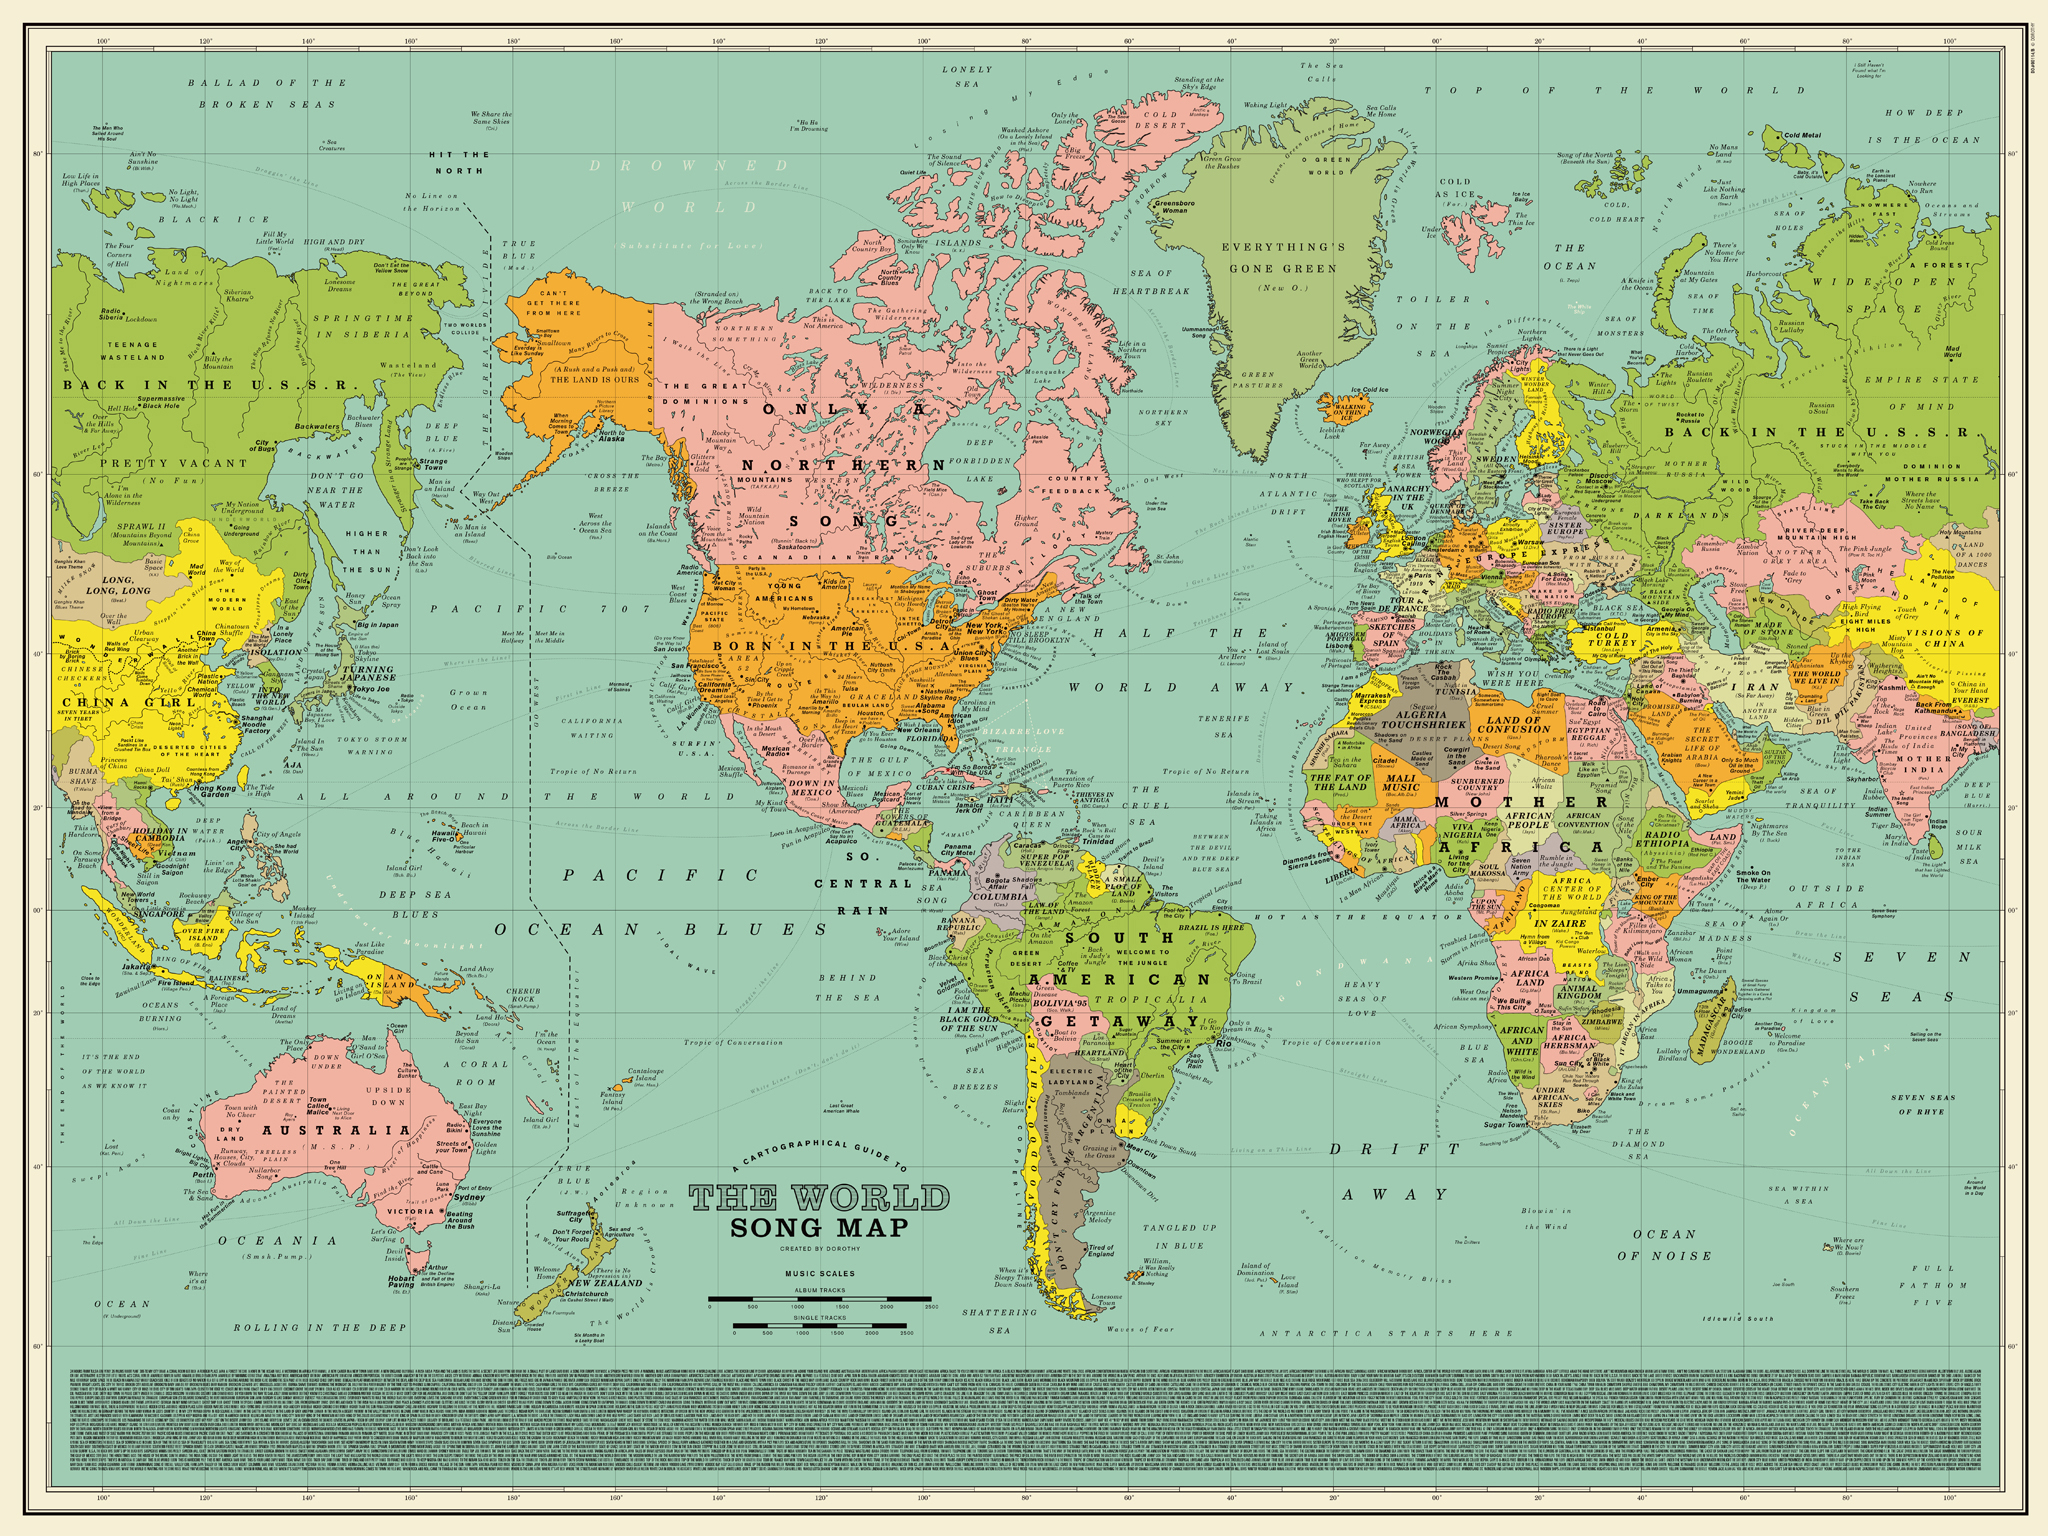 World Song Map A Detailed Poster That Imagines The World Map Made - Map worls